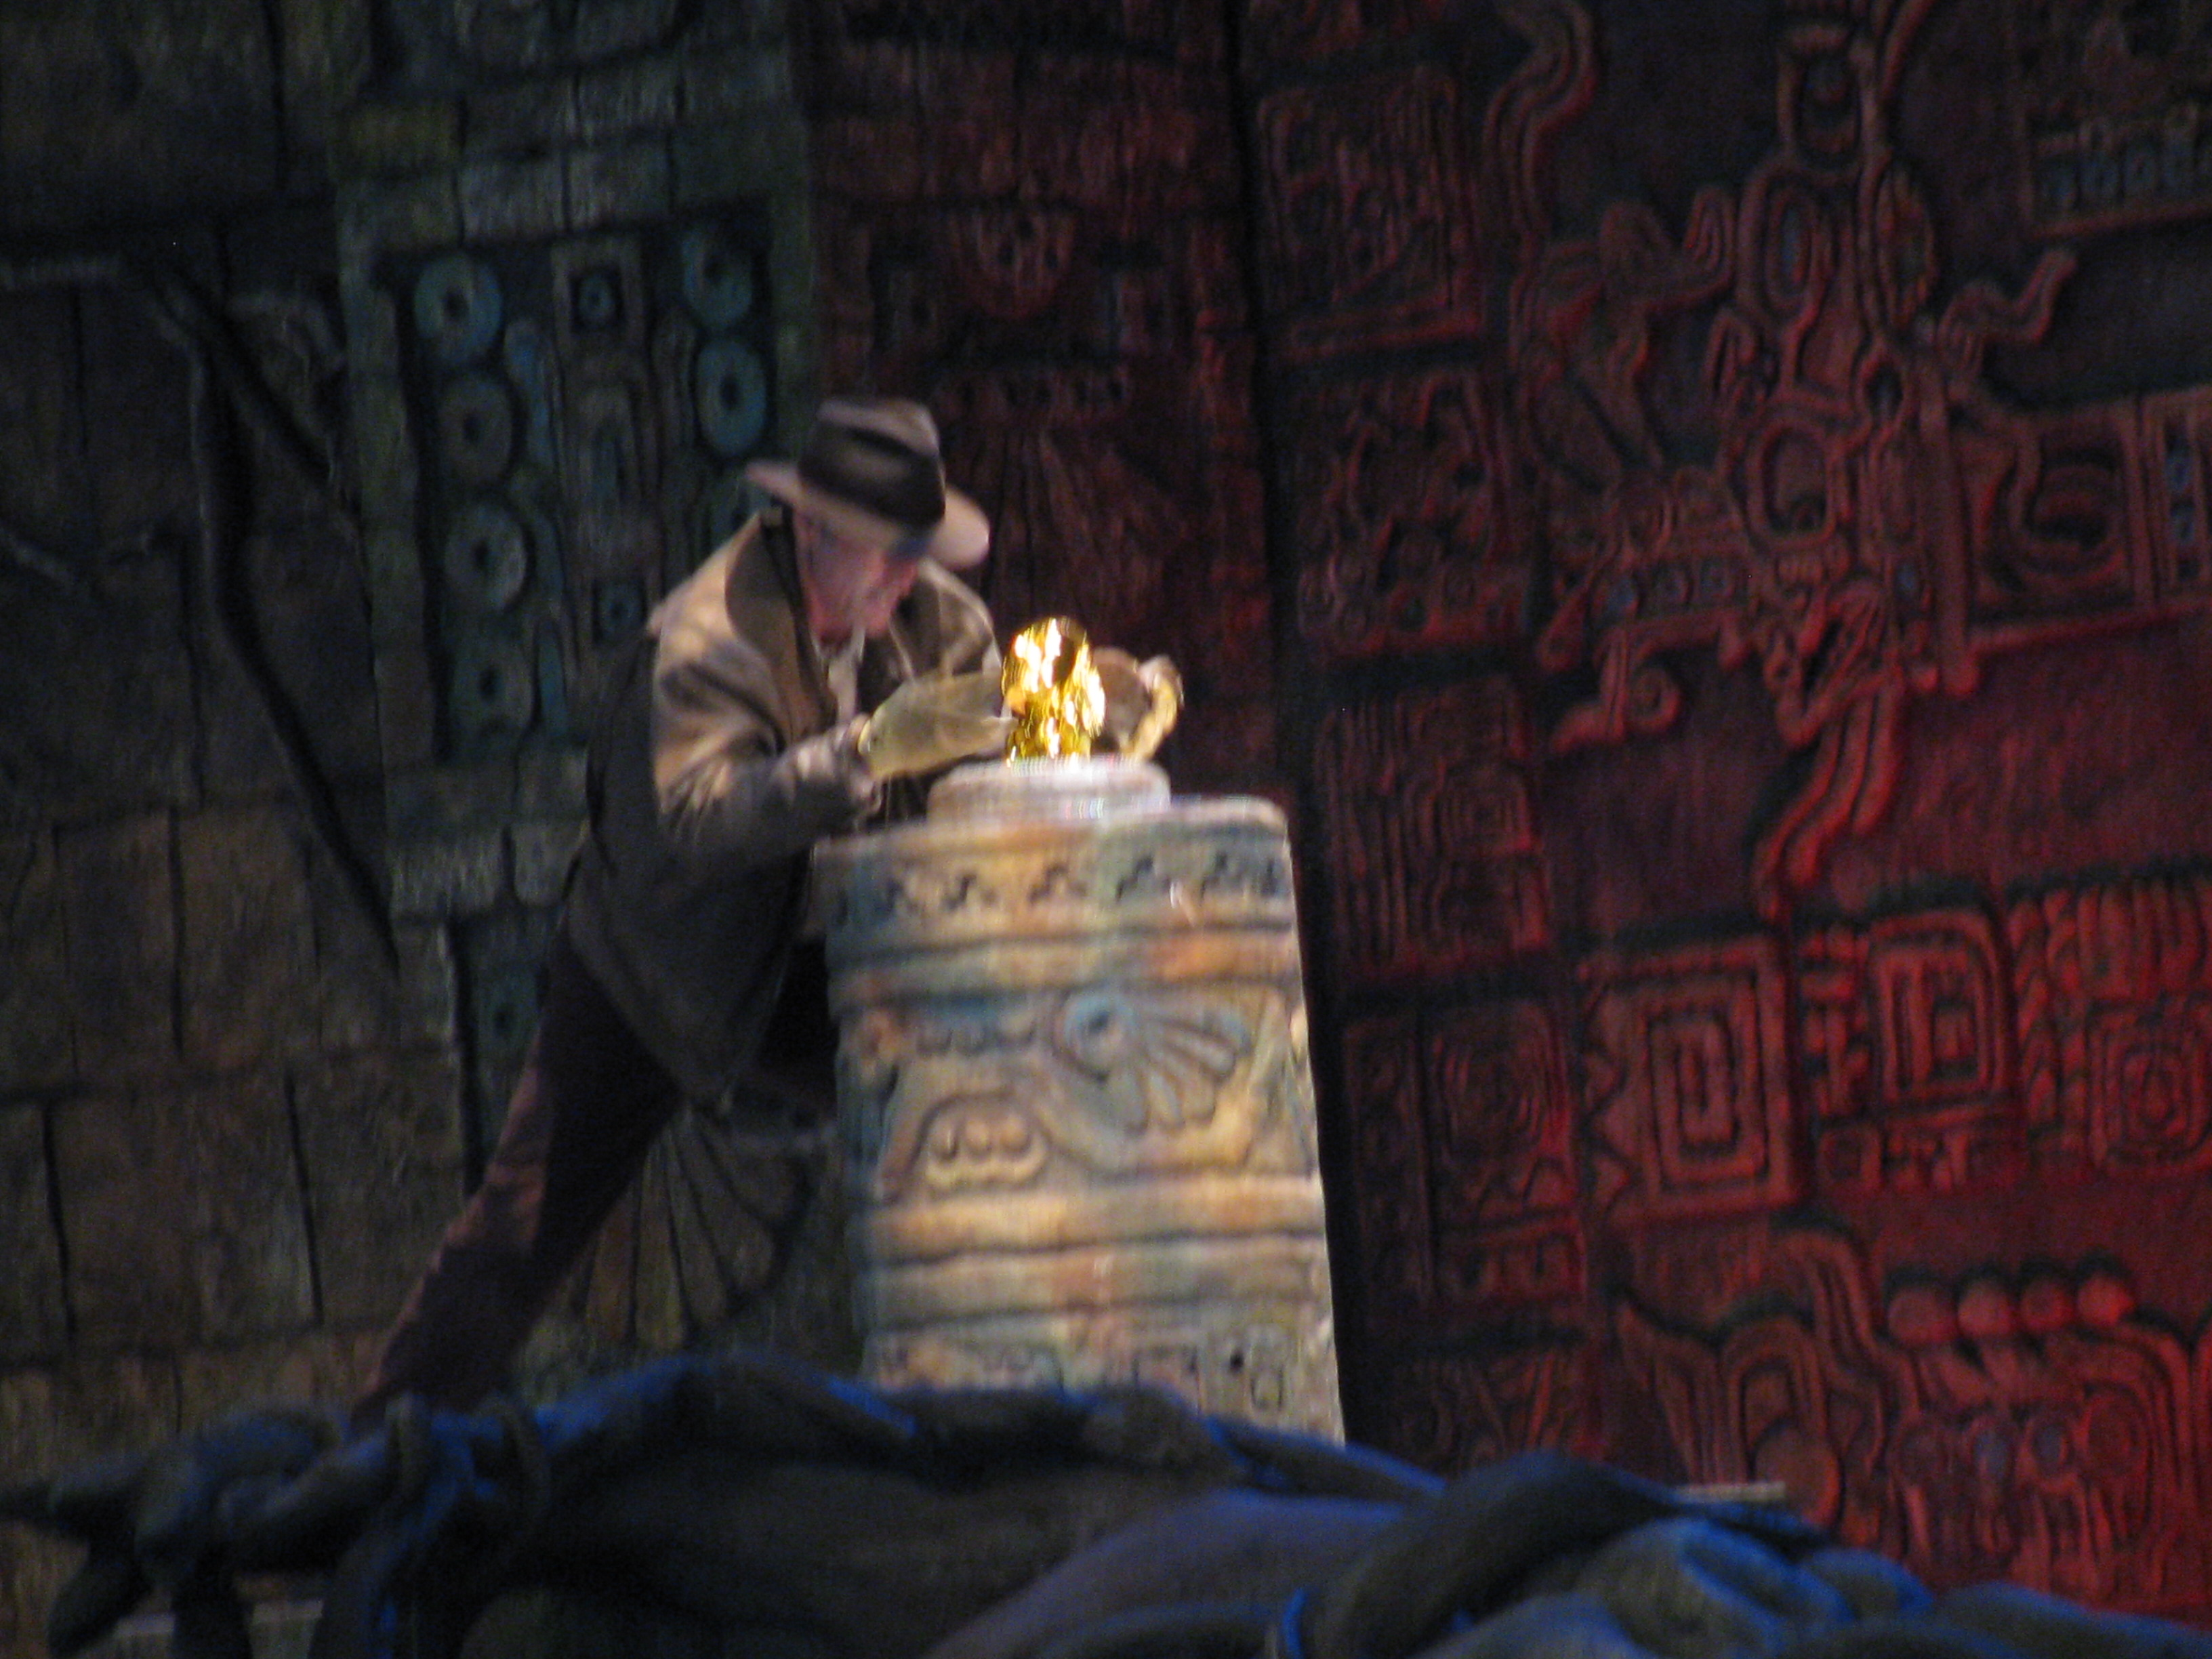 Disney's Hollywood Studios – The Indiana Jones Epic Stunt Spectacular